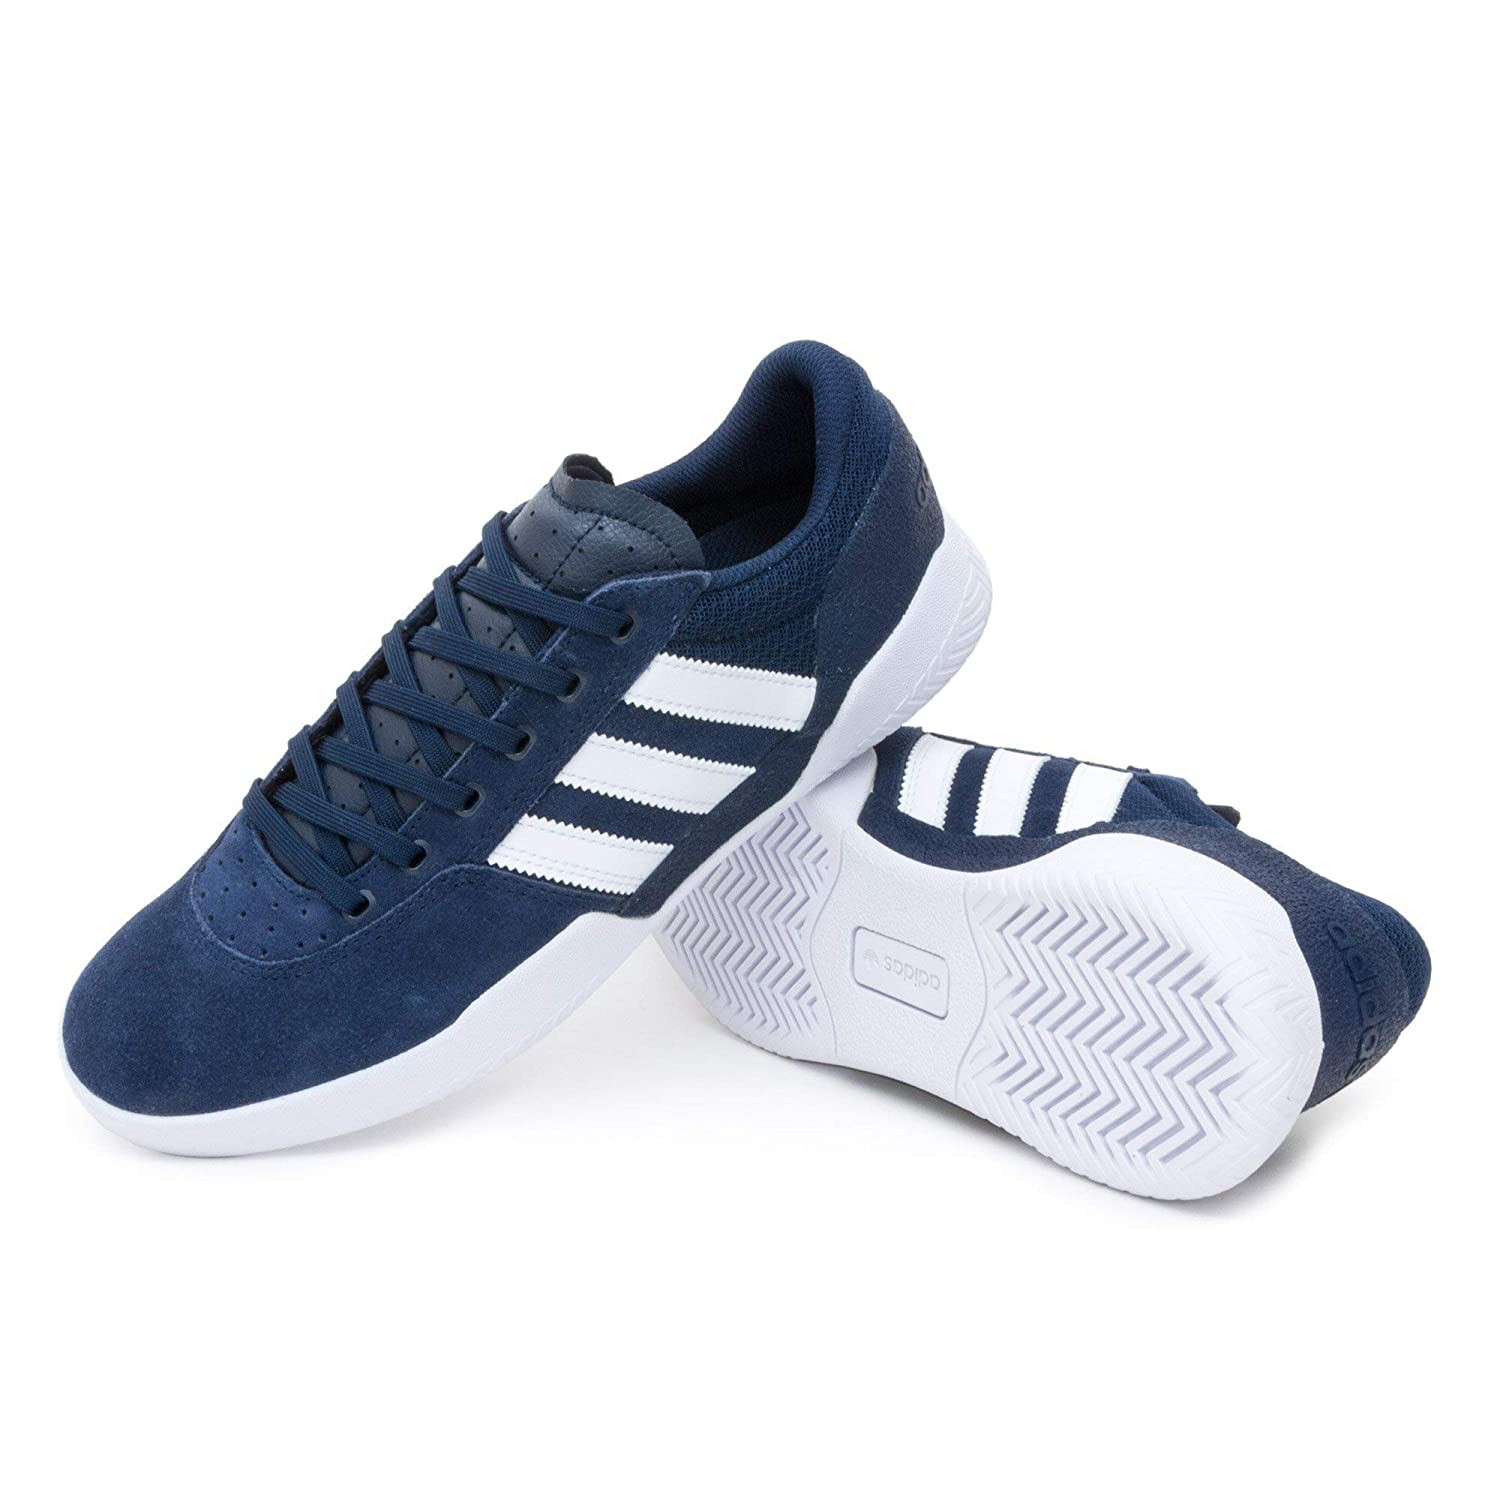 adidas Men's's City Cup Skateboarding Shoes